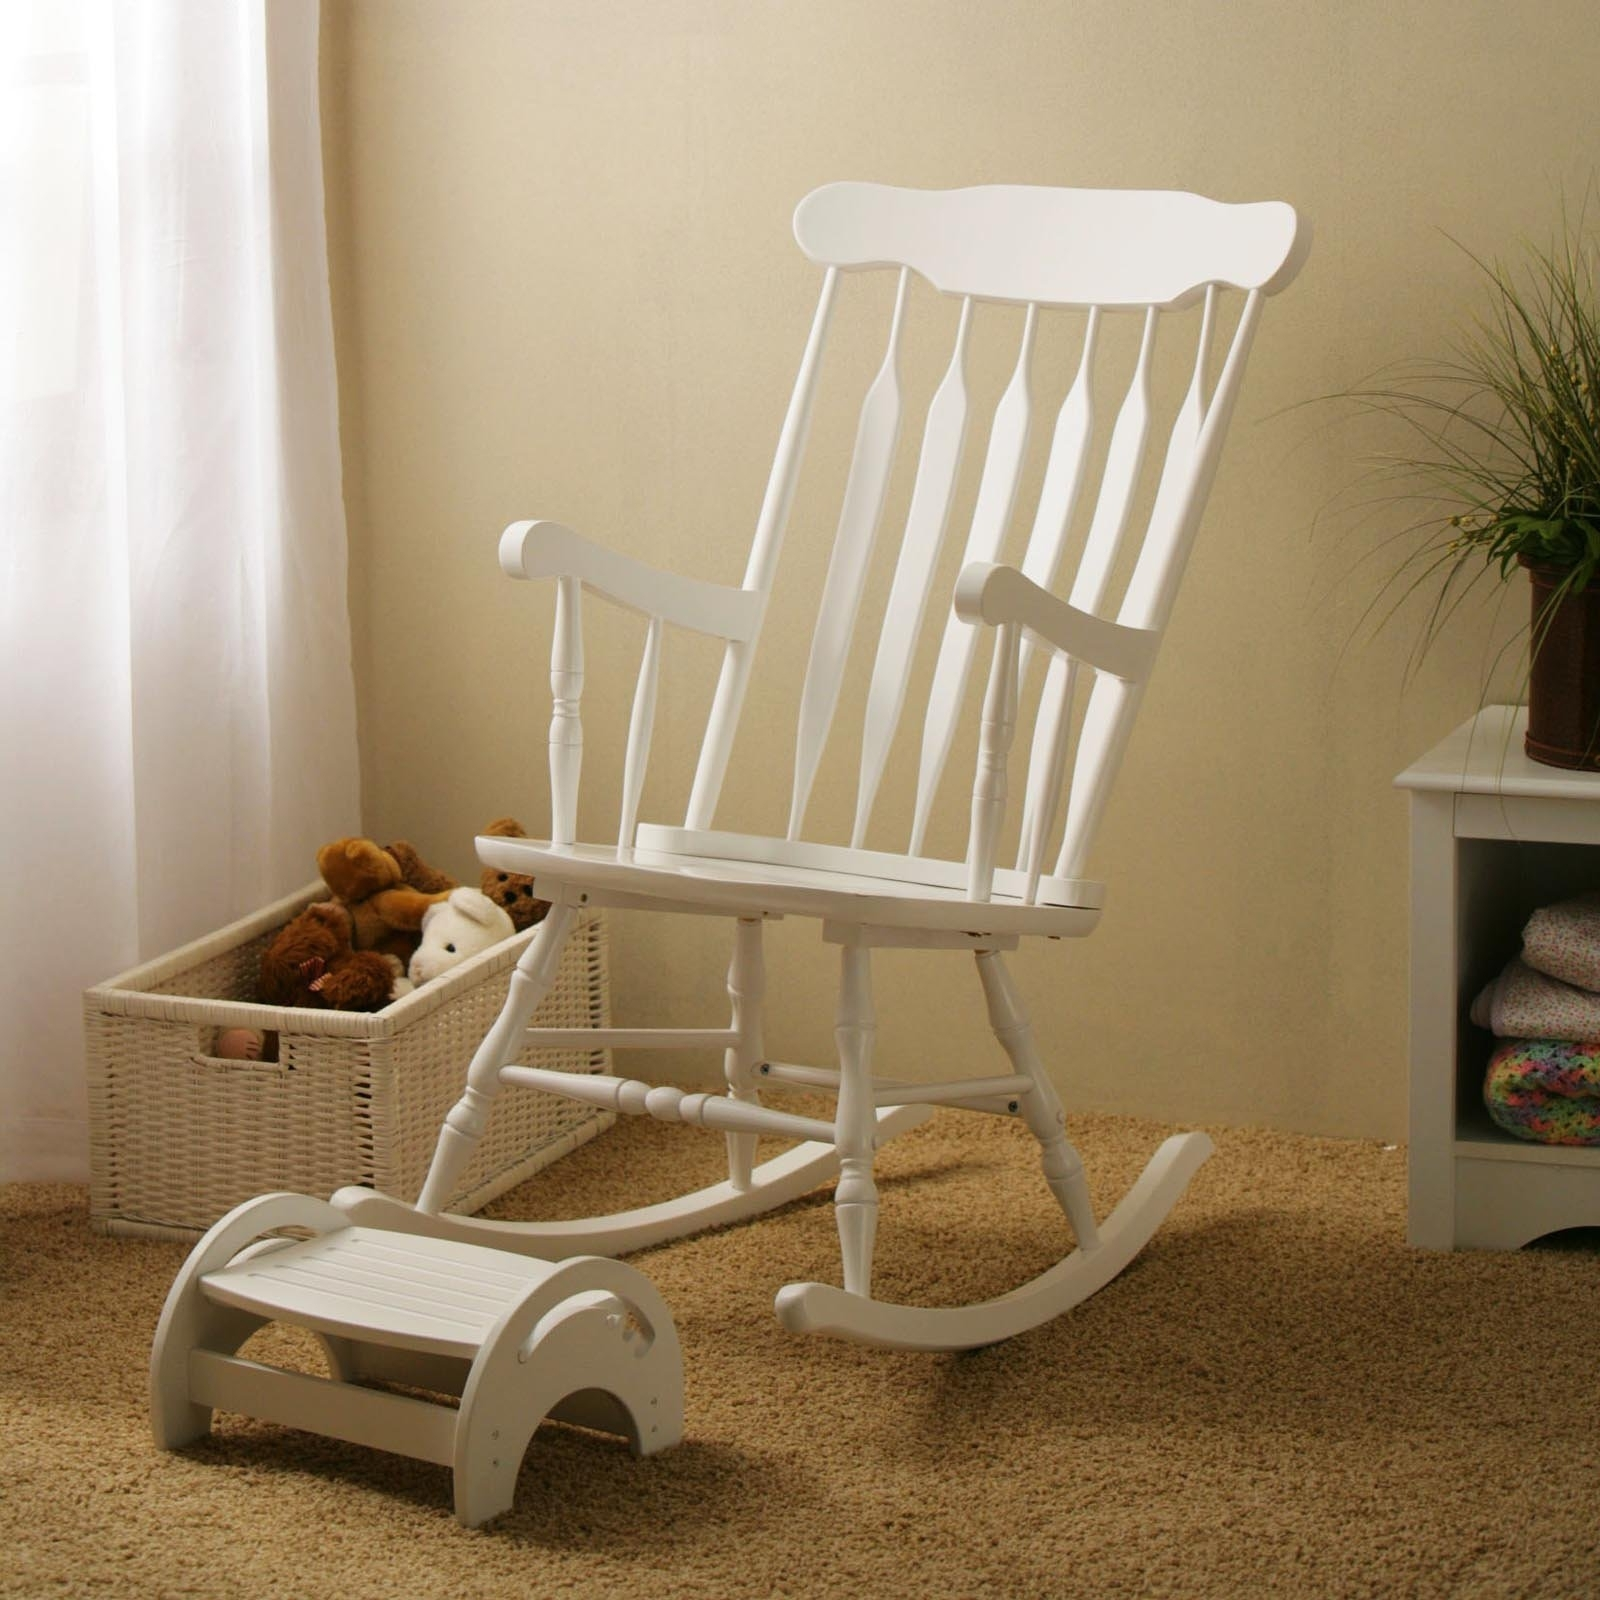 Rocking Chairs For Nursing With Current Nursery Rocking Chair (View 9 of 20)